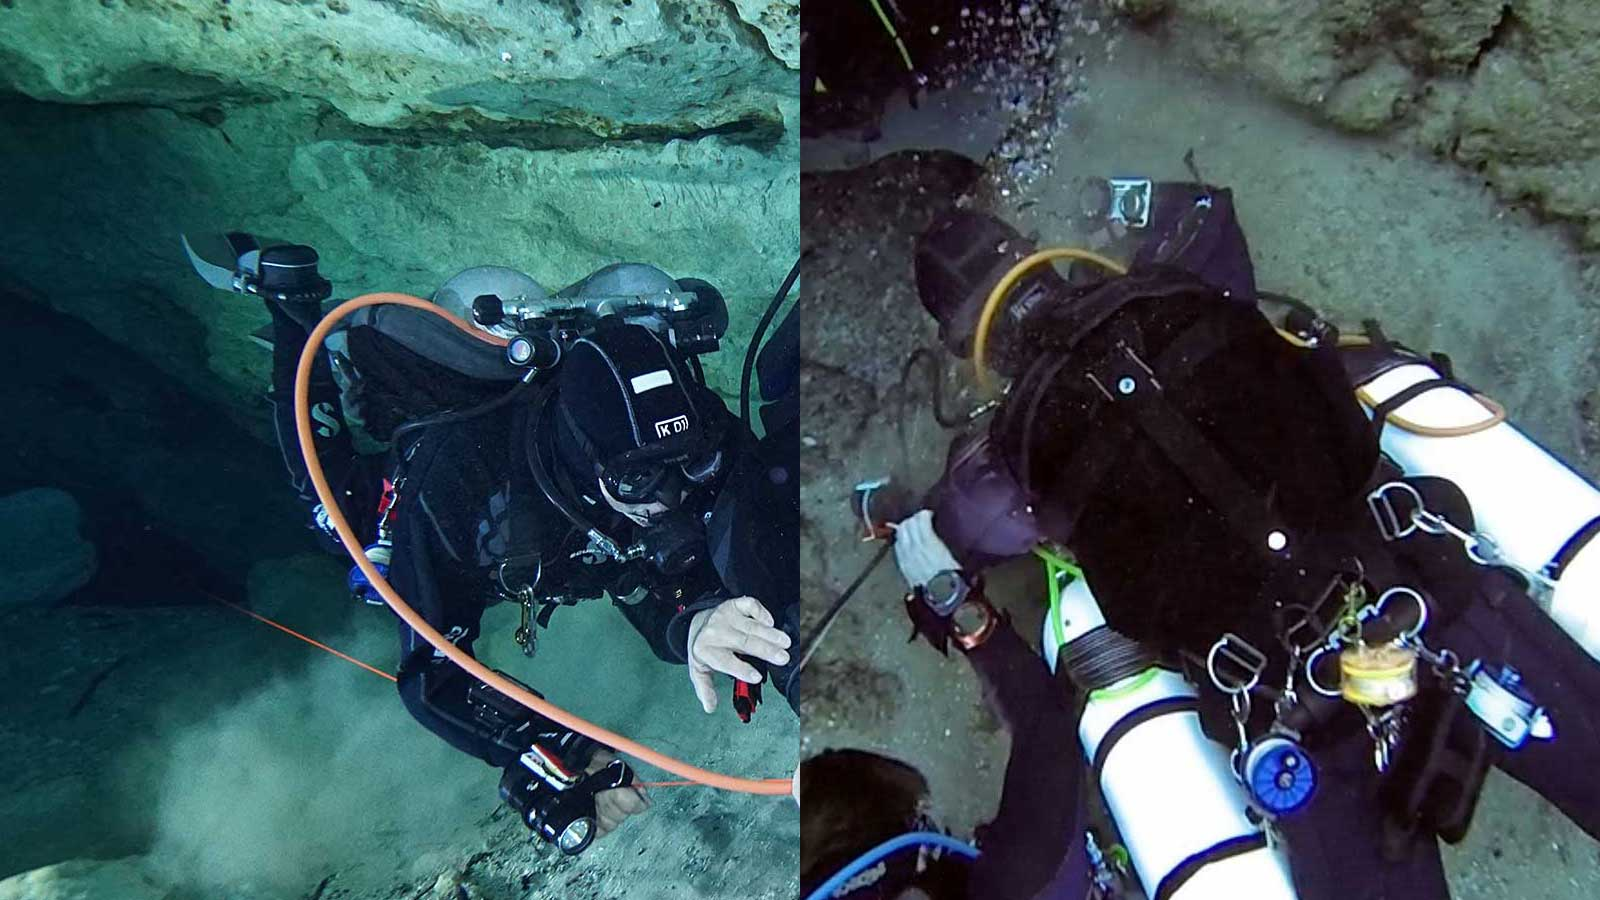 Backmount Vs. Sidemount For Cave Diving